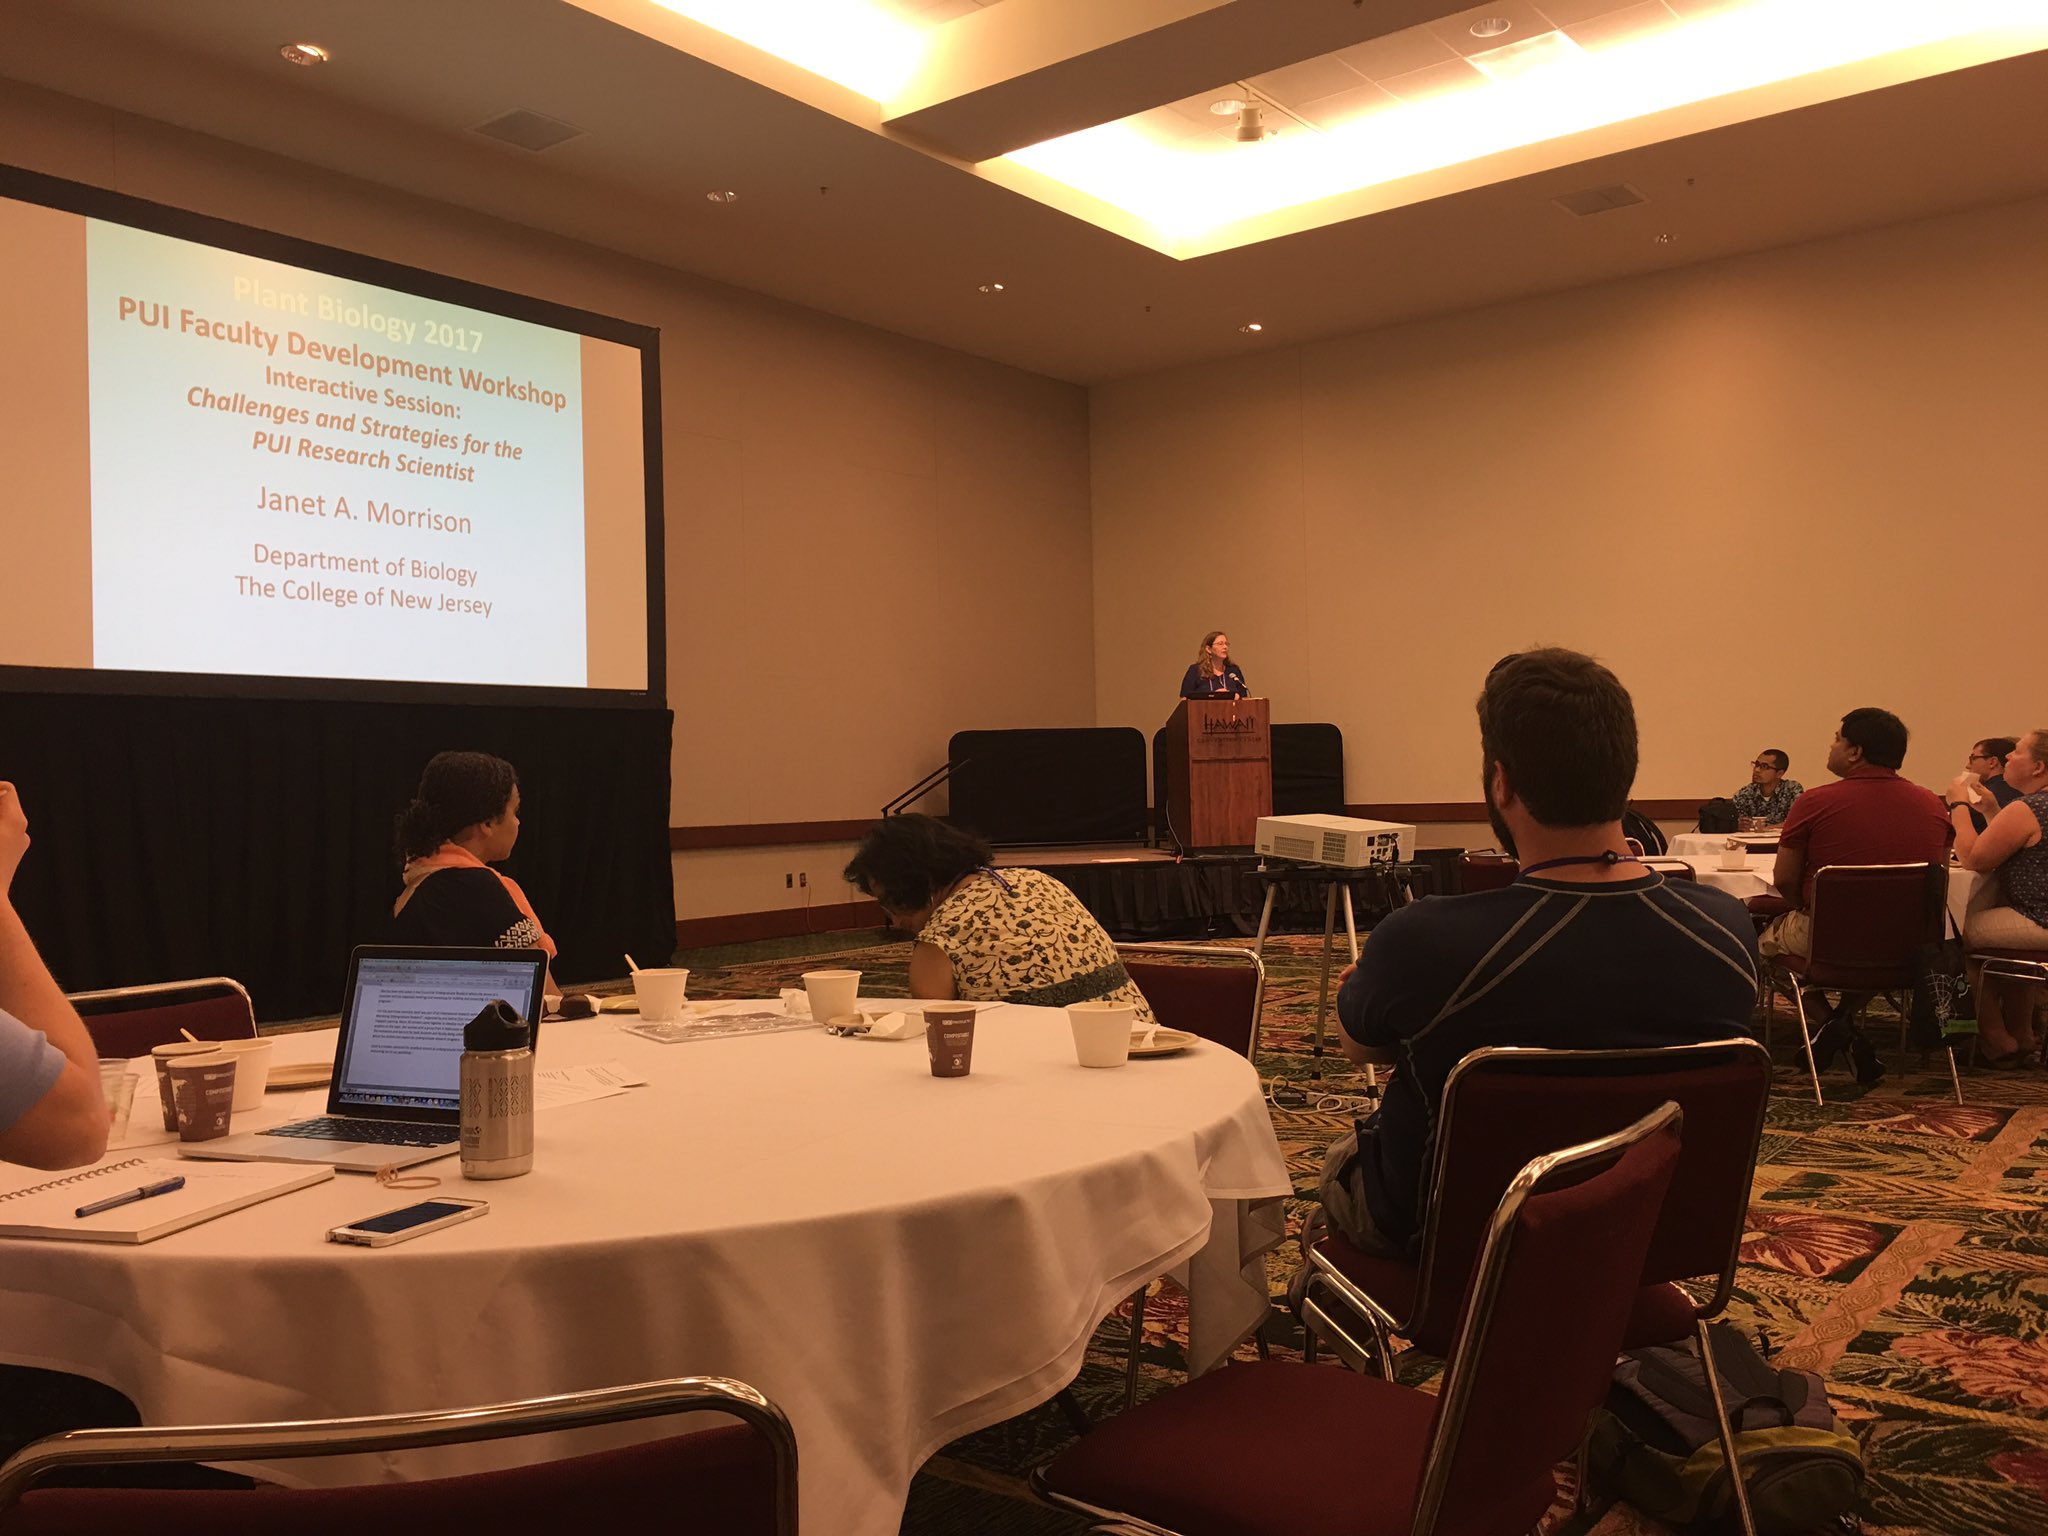 Full house at the PUI workshop. Janet Morrison on strengthening research programs at PUIs; slides will be shared  #plantbio17 https://t.co/8SxfPwRokf